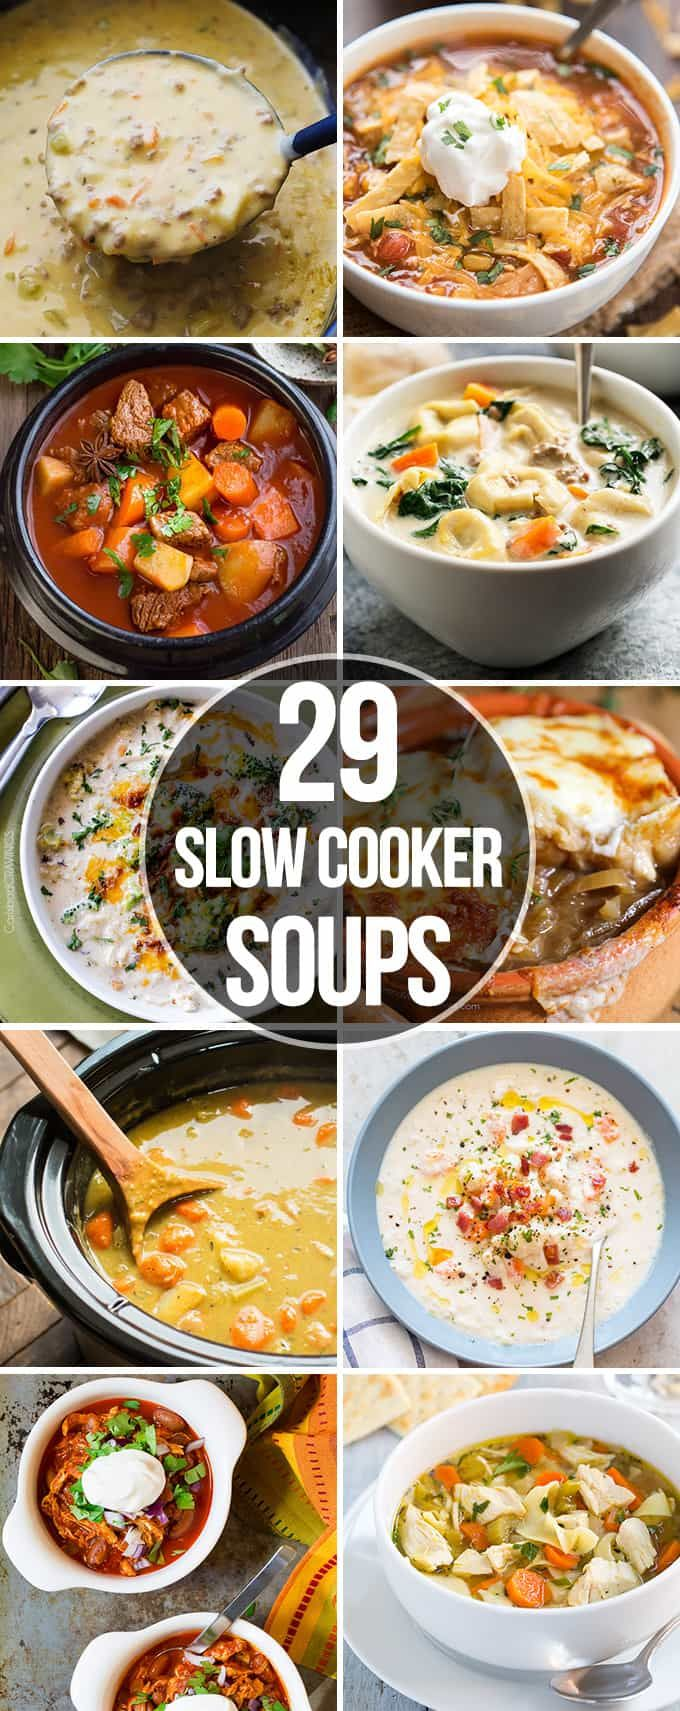 Twenty NineSlow Cooker Soups that are perfect for an easy comforting meal, ready with out a lot of prep, great for a cold day! The holidays are over and we've got a couple more months of cold weather headed our way. What about you? What's the weather like in your neck of the woods? When...Read More »